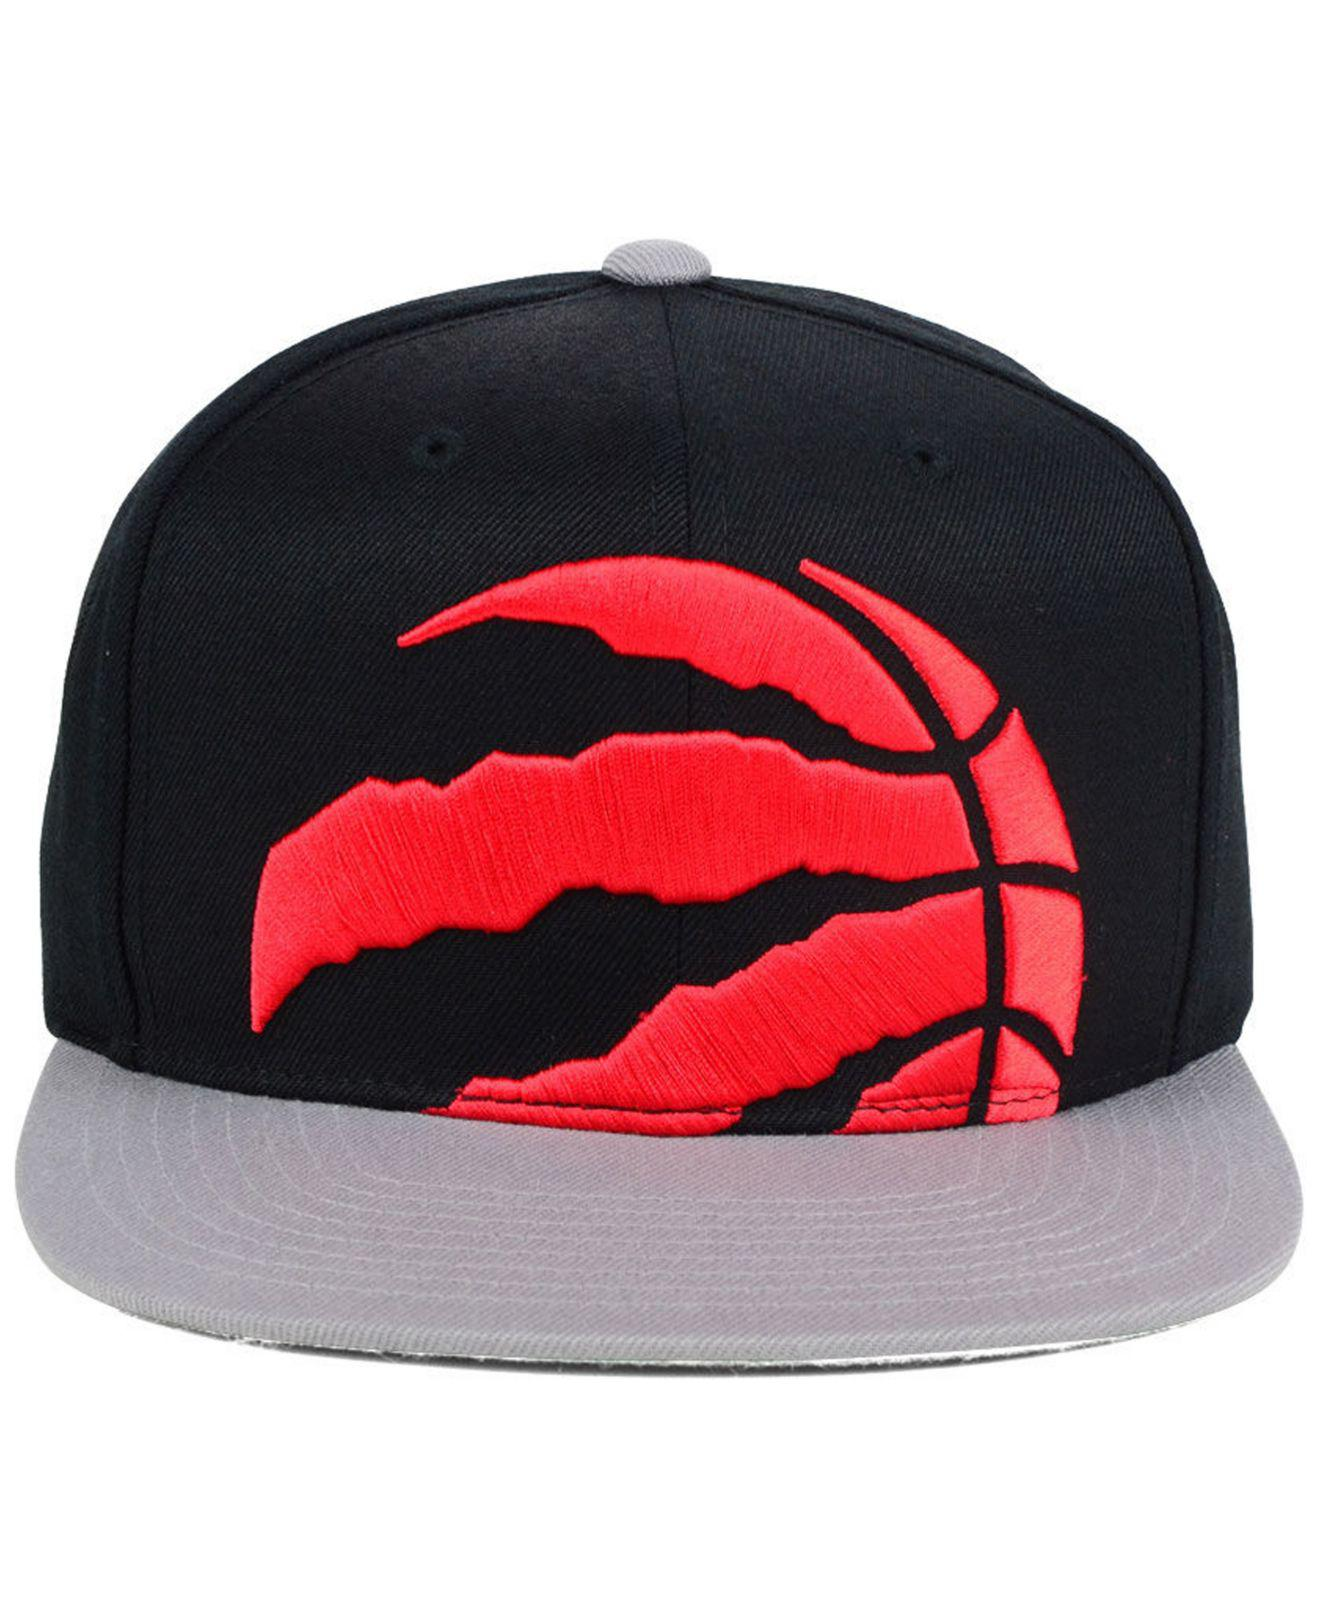 8babbd35091095 ... hot lyst mitchell ness toronto raptors cropped xl logo snapback cap for  men c45bd fef53